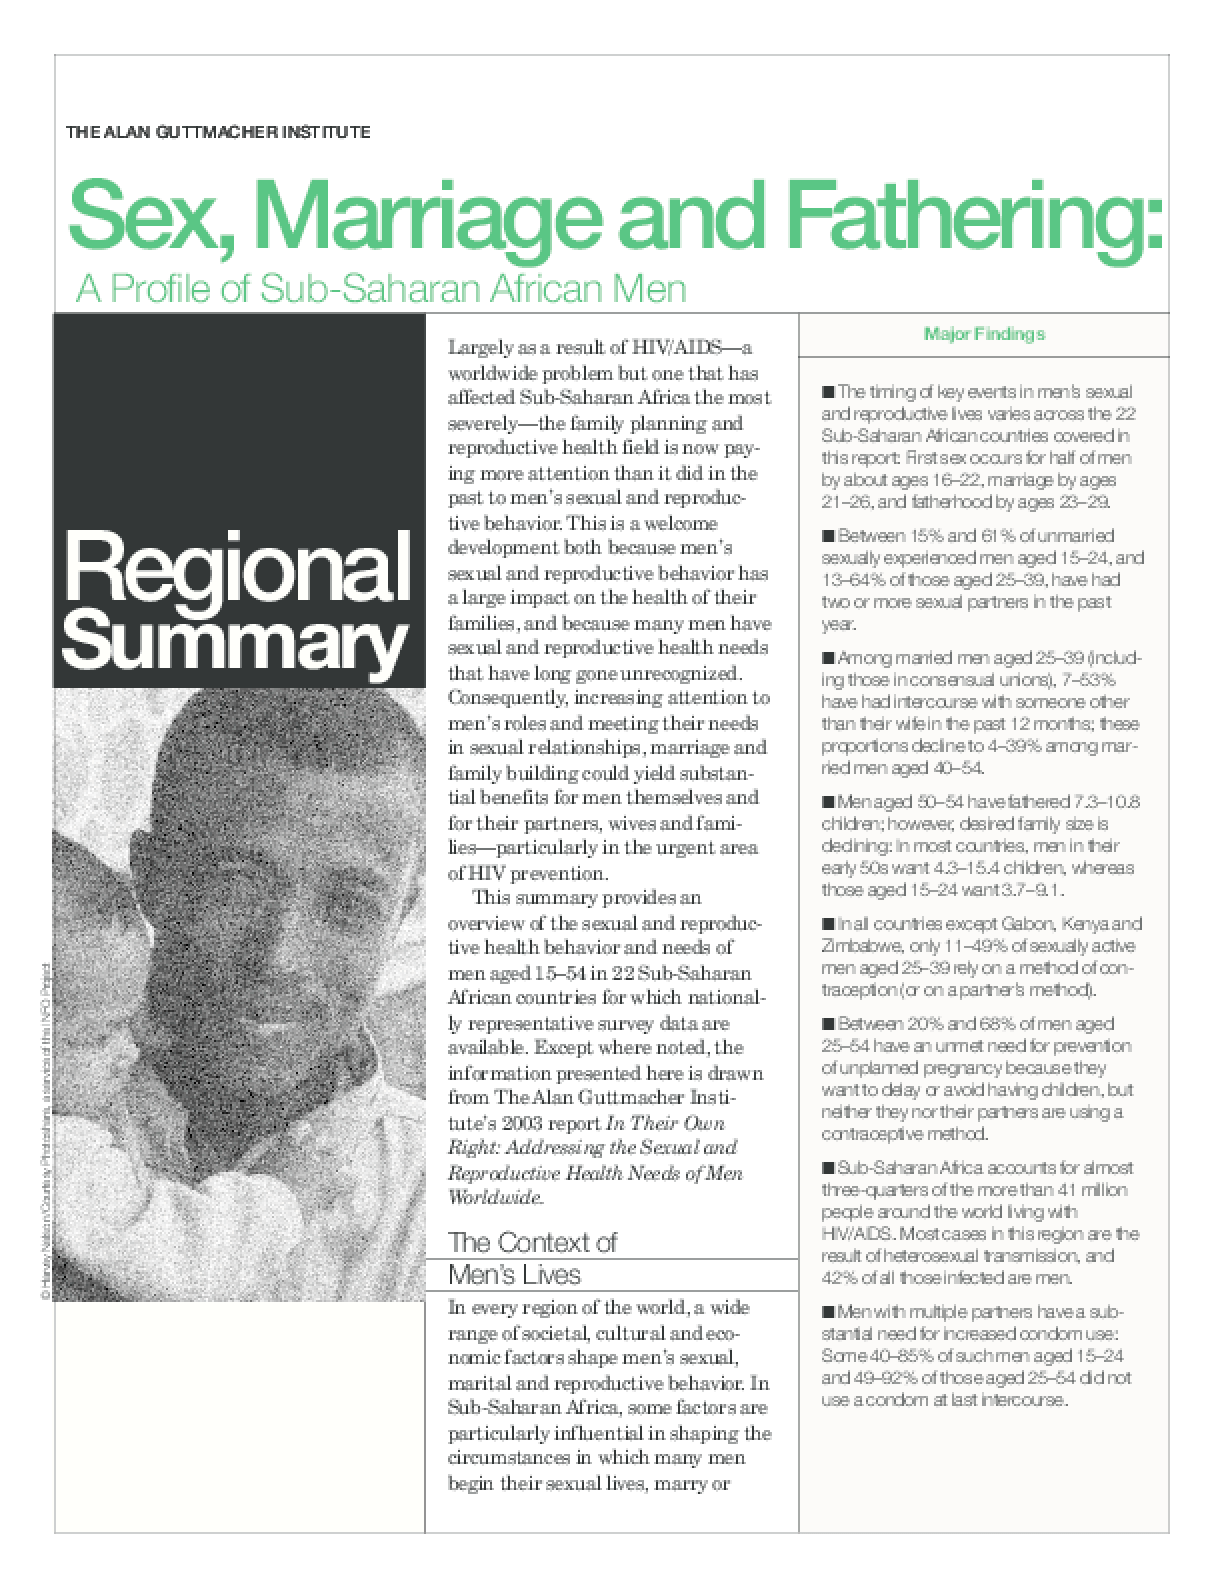 Sex, Marriage and Fathering: A Profile of Sub-Saharan African Men